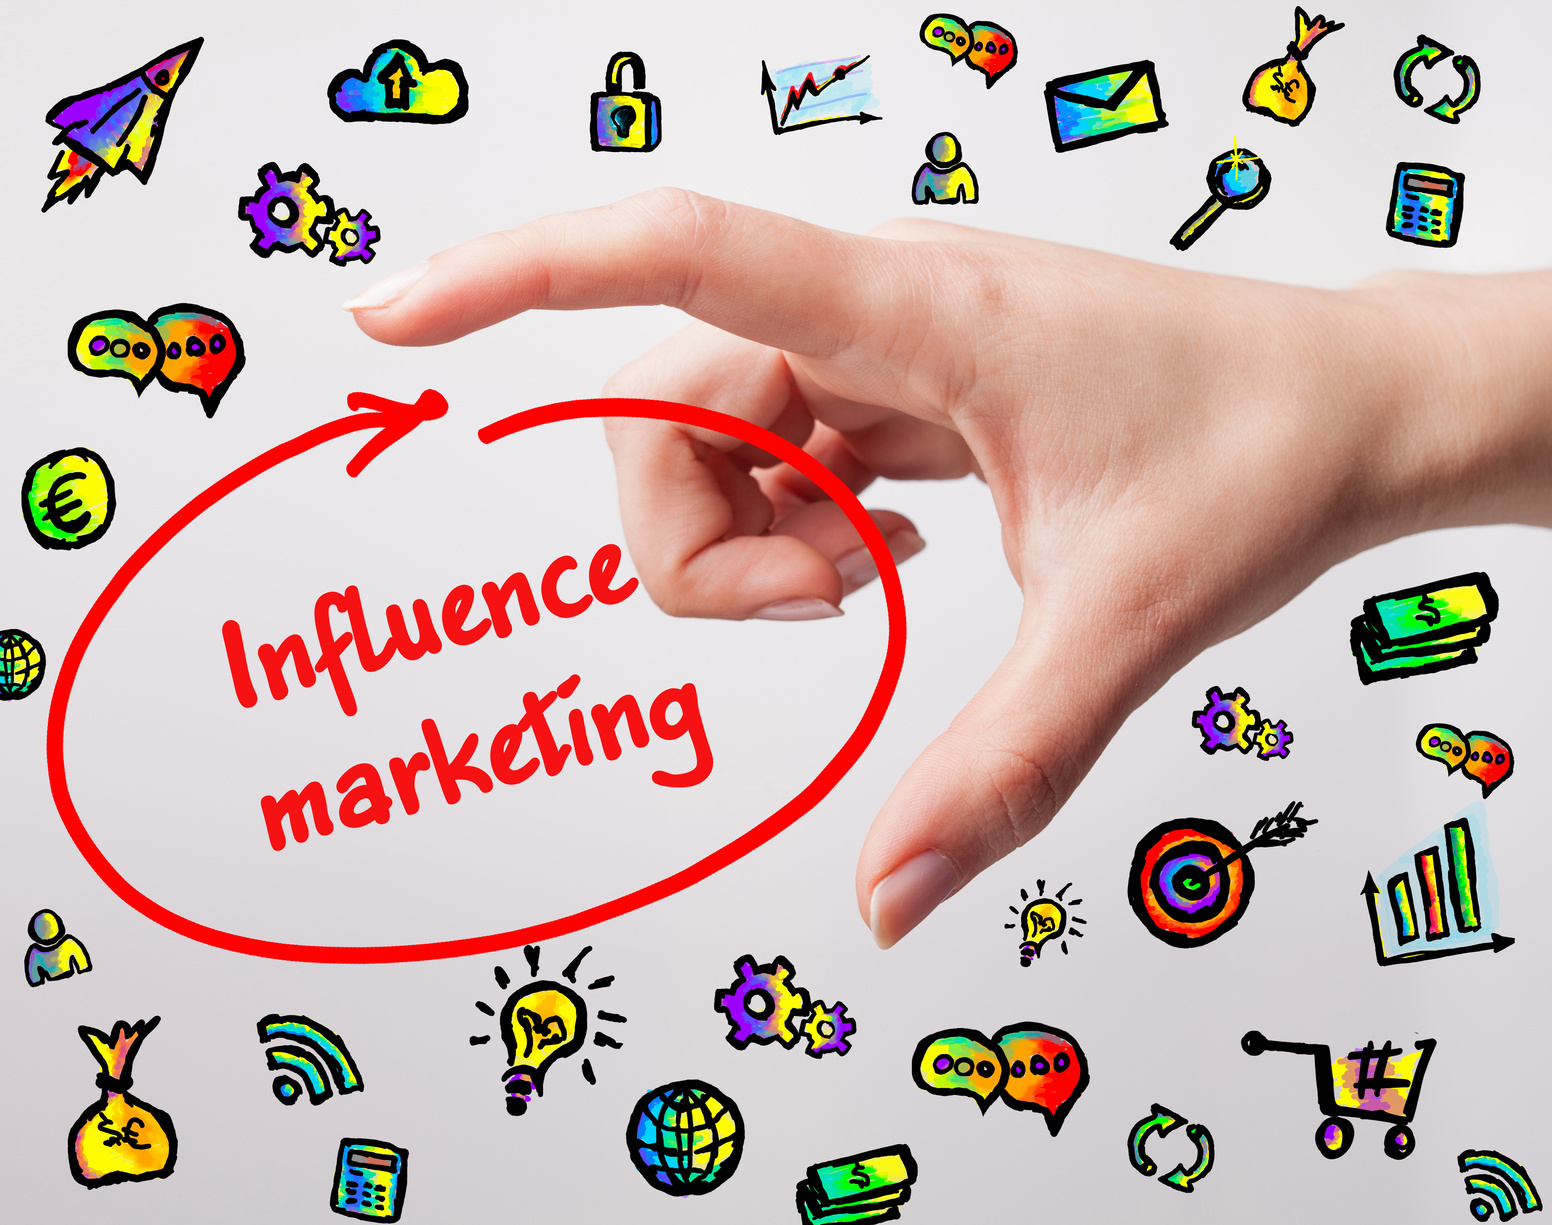 Influencer Marketing Definition, How to Uses for Business